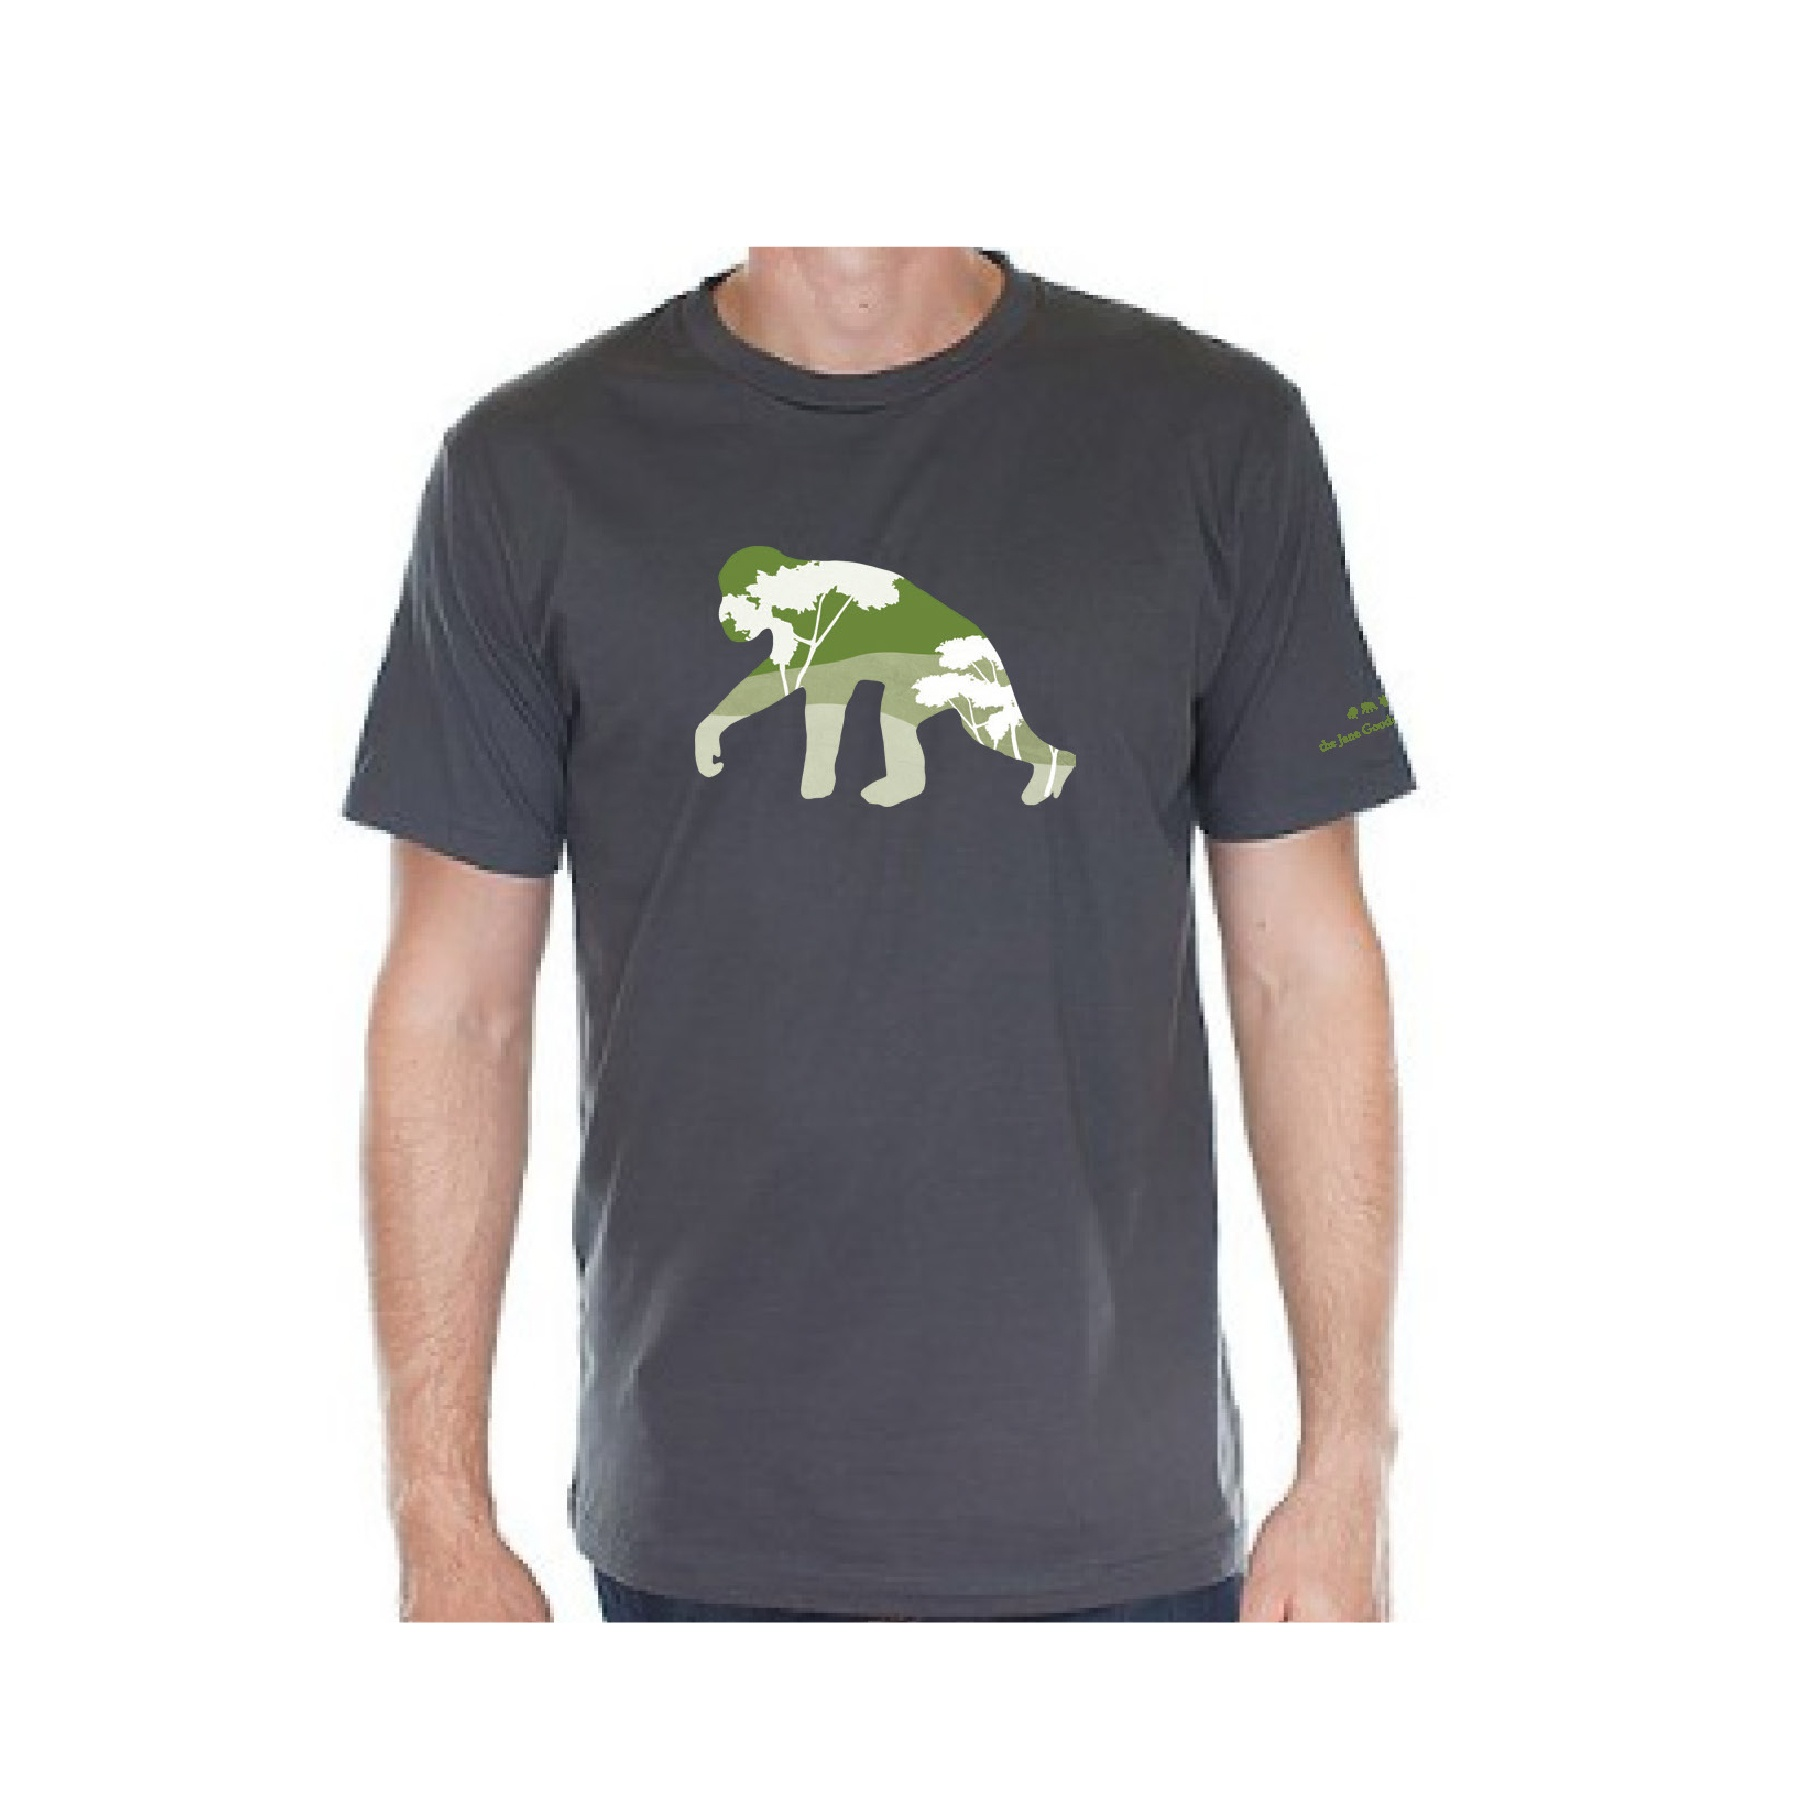 Topographic Chimp Unisex T-shirt